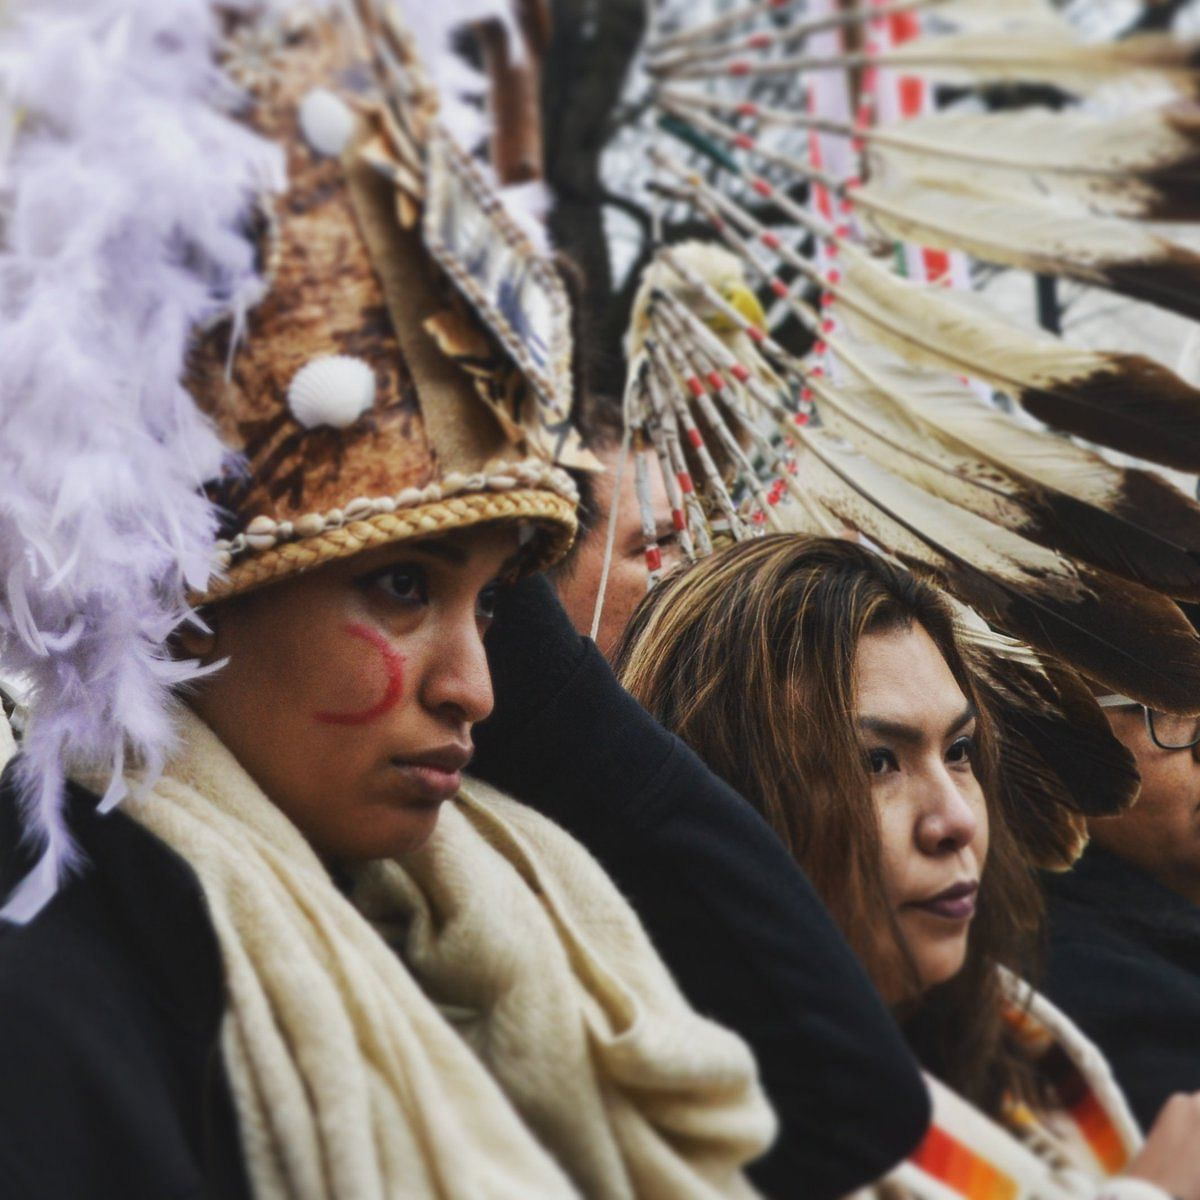 Visuals from the Indigenous People's March.